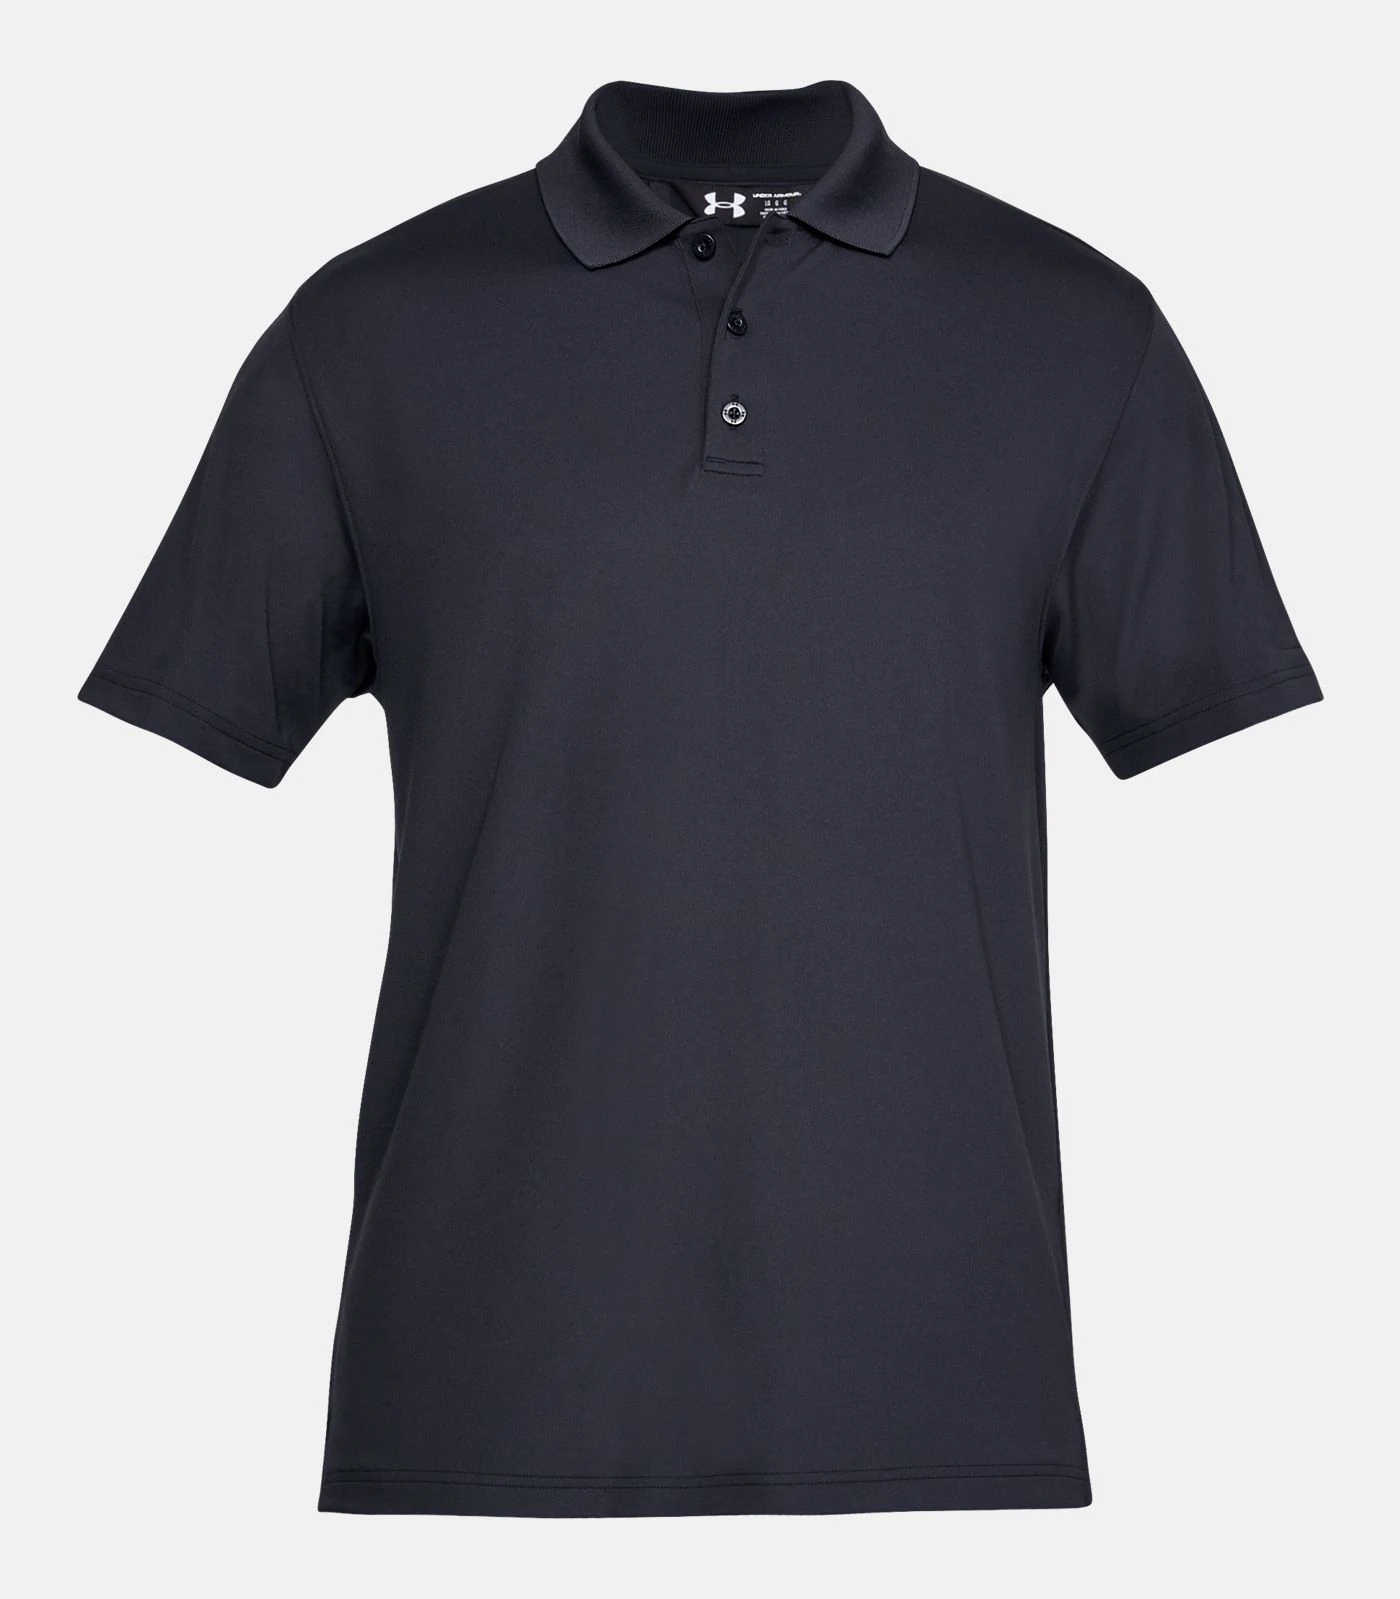 MENS_POLO_TacPerformance-SS_UAR1279759465_04